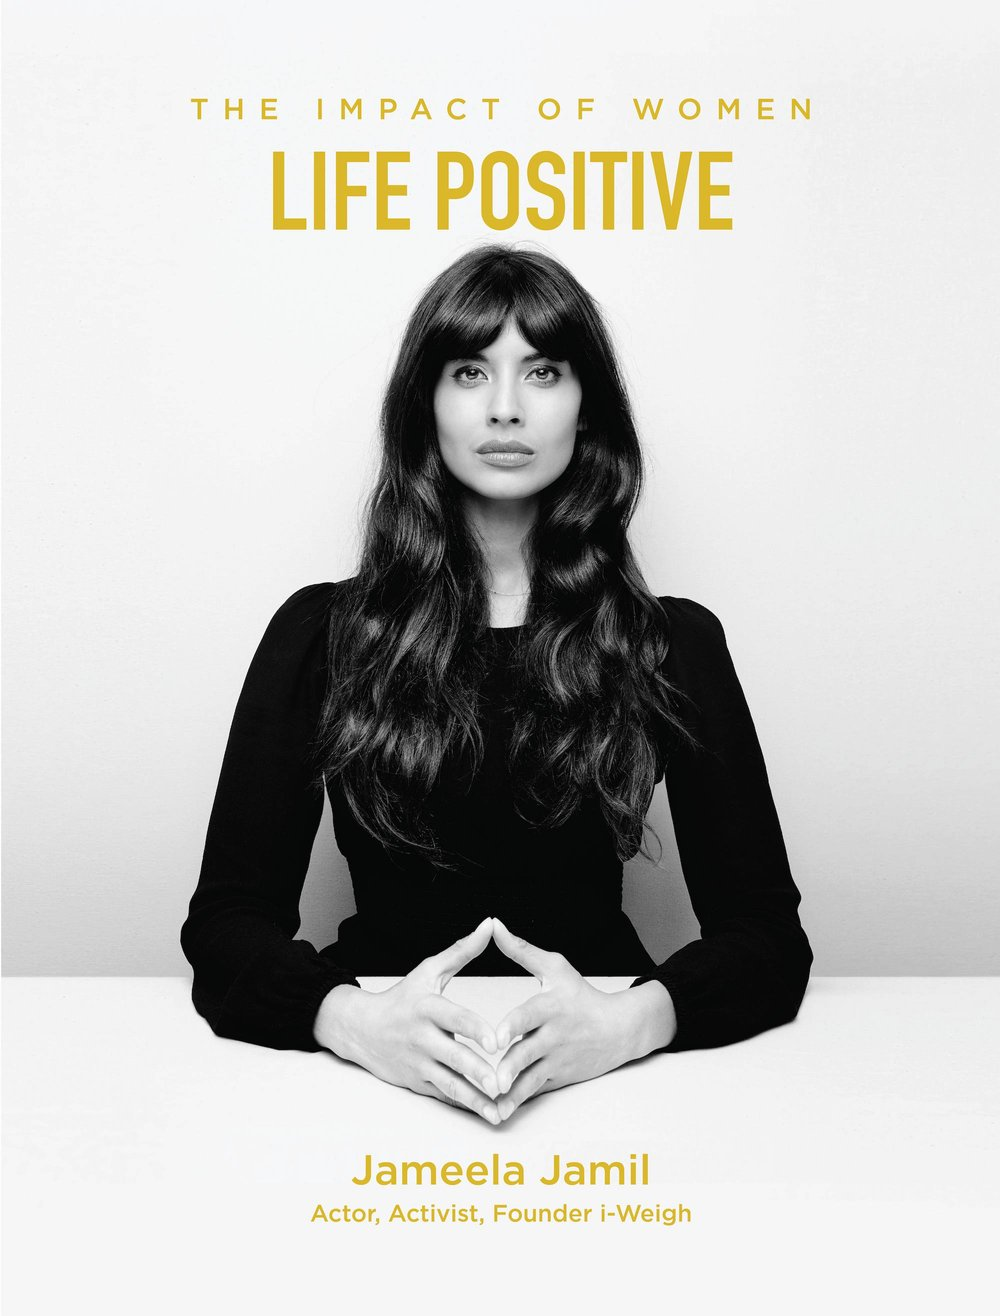 Jameela Jamil is Life Positive